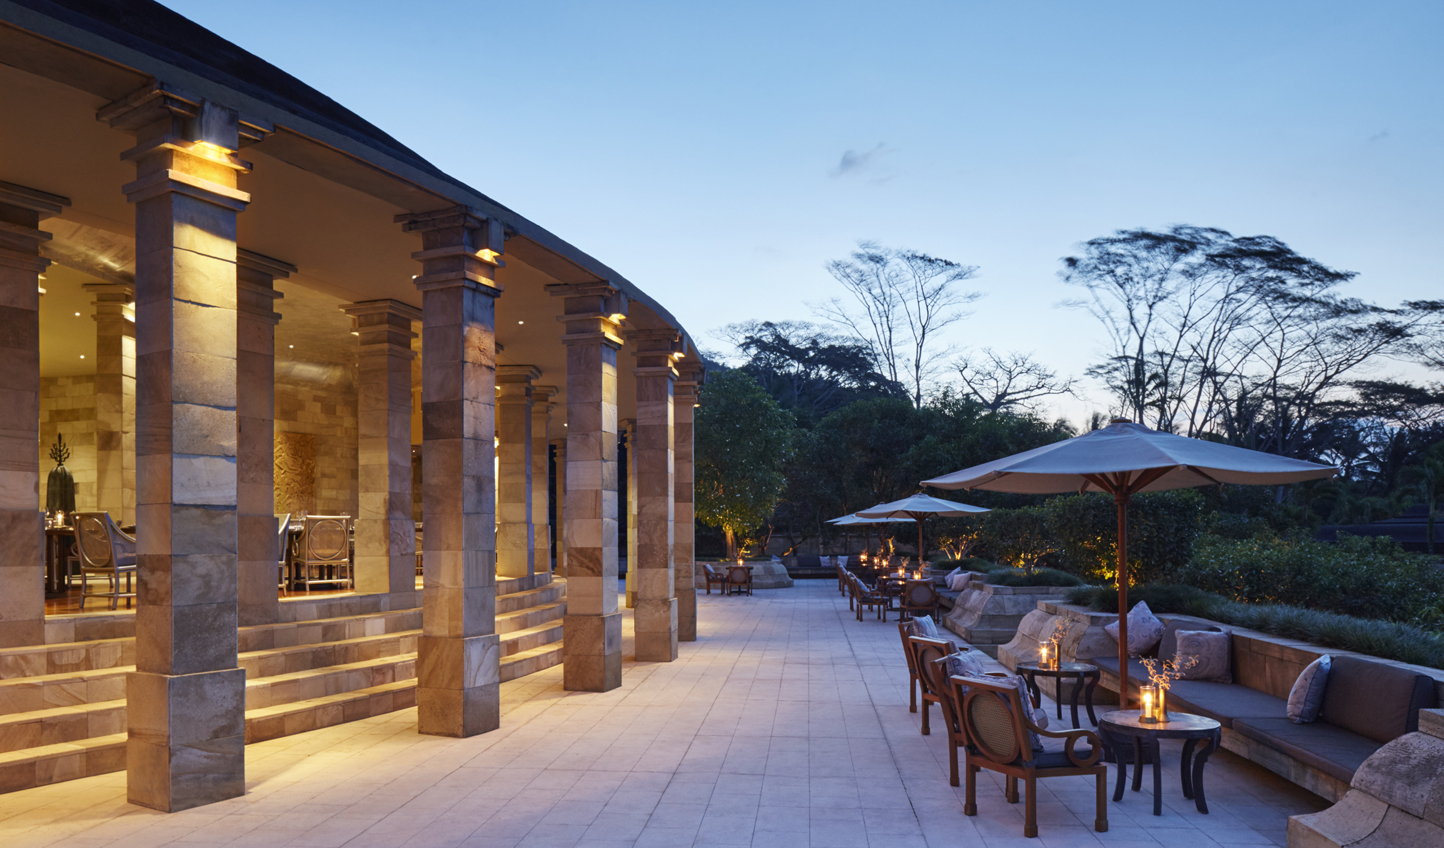 Dine out on the terrace at dusk